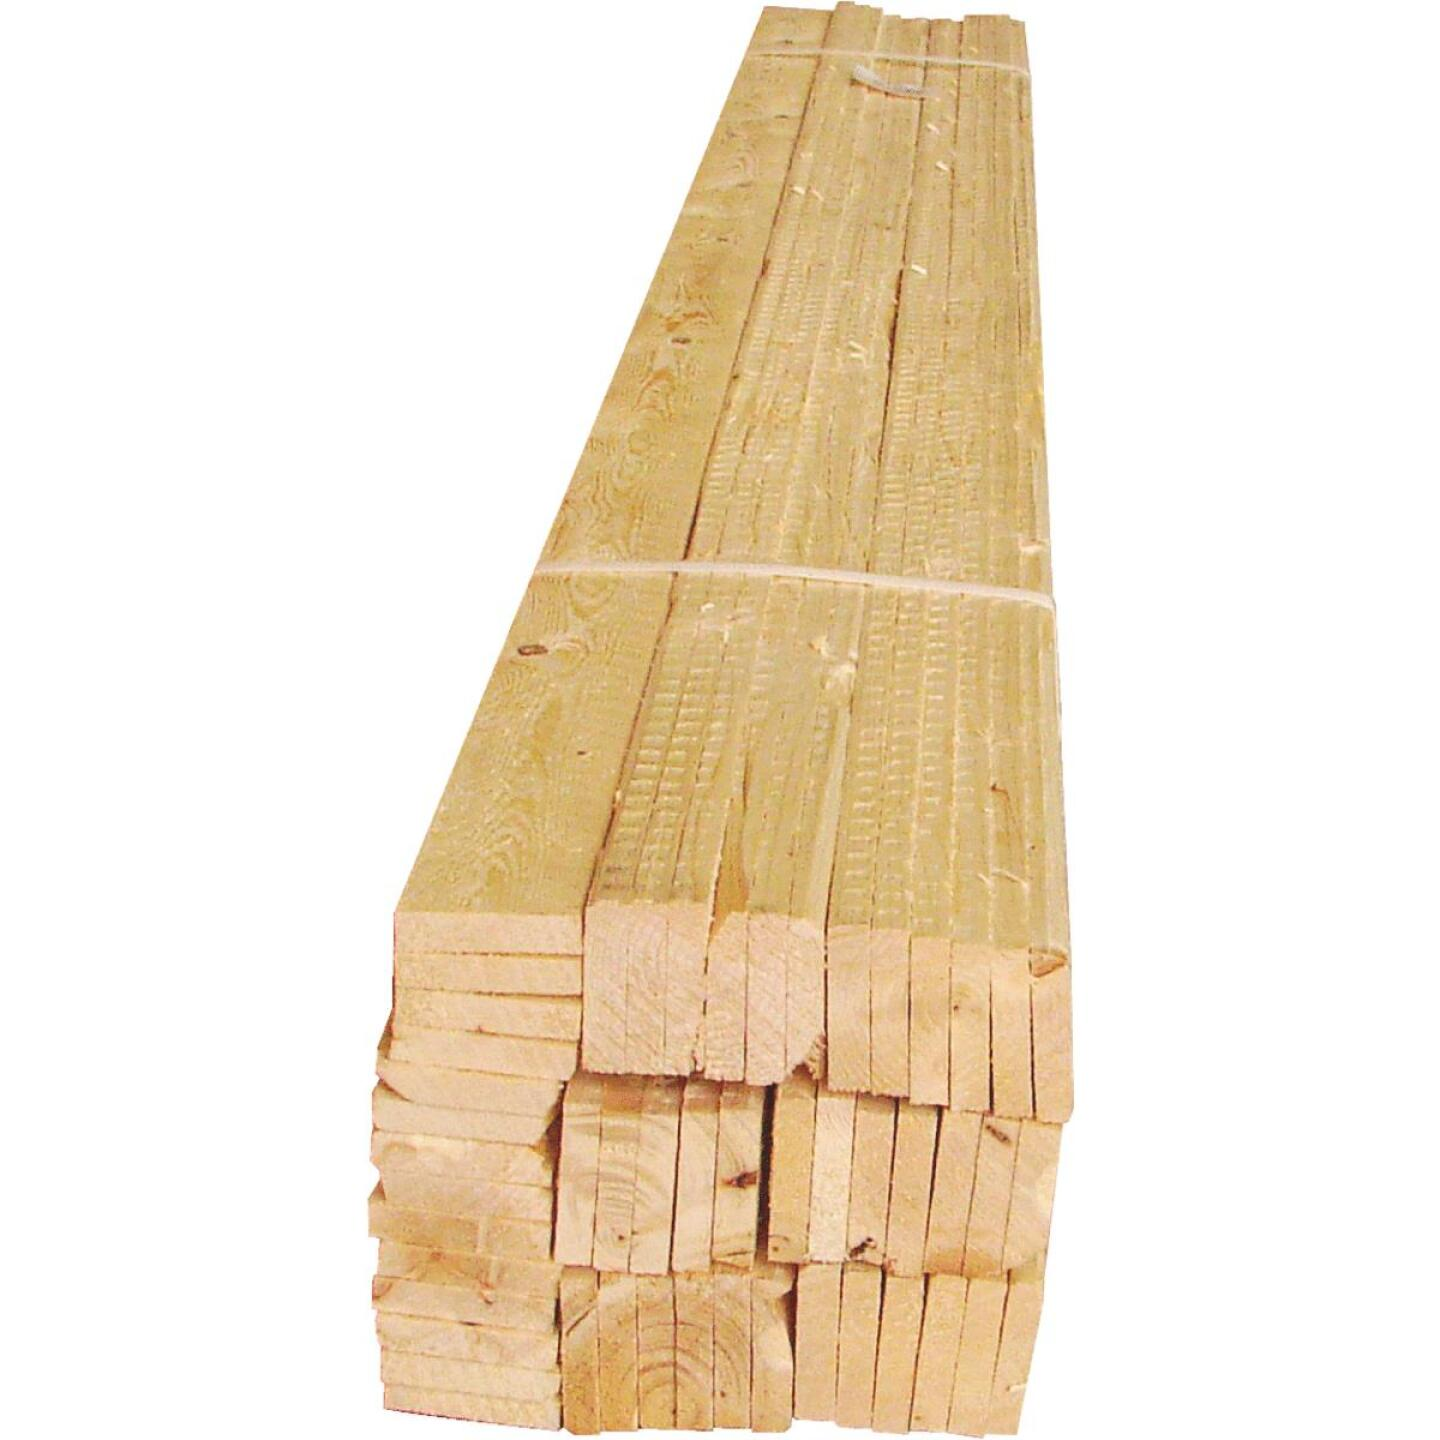 Sourcewood 1-1/2 In. x 3/8 In. x 48 In. Wood Lath (50-Pack) Image 2